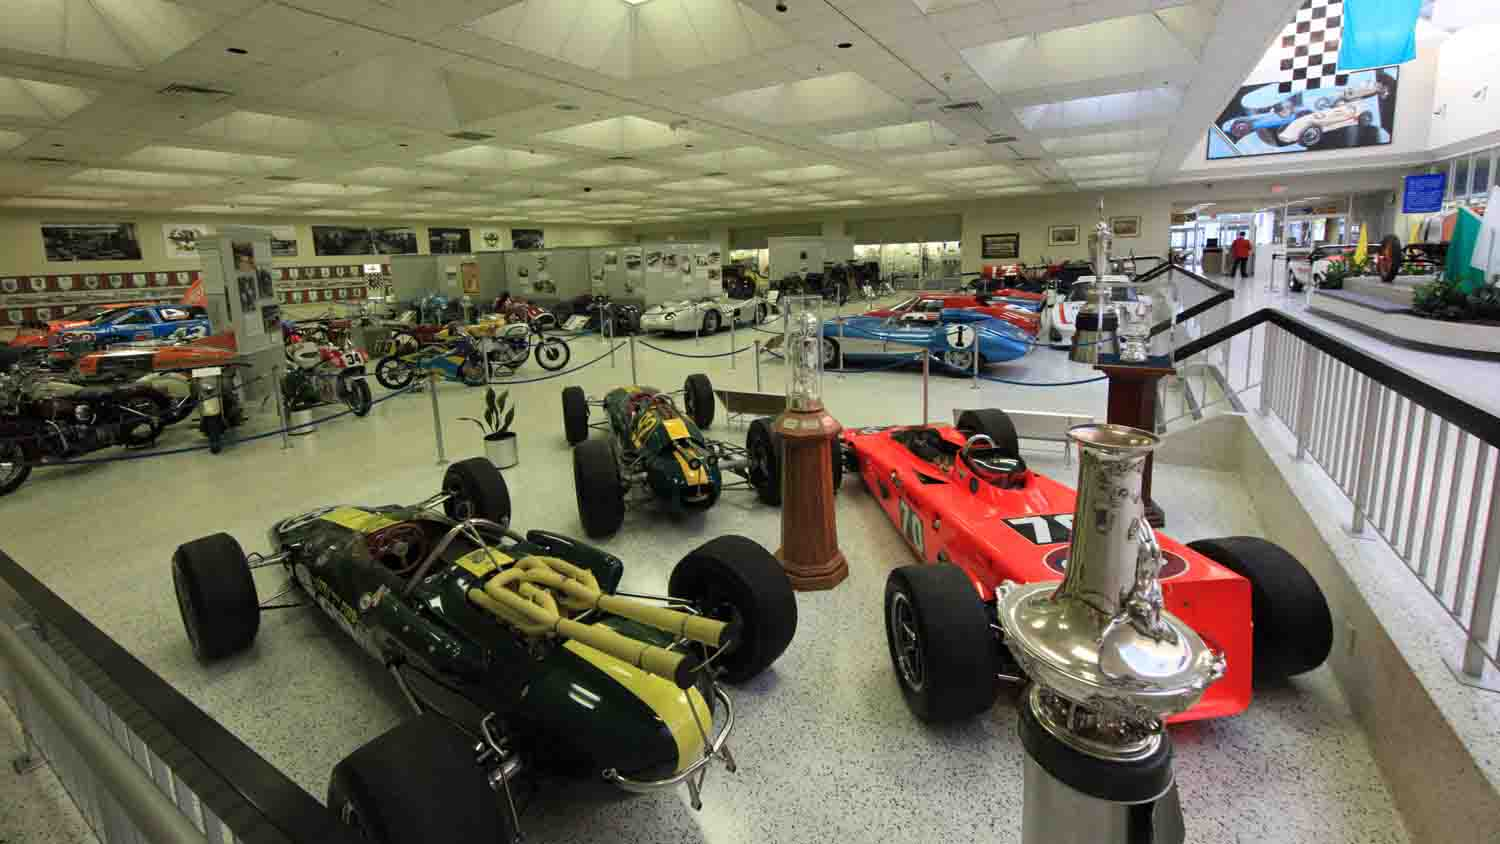 Ims hall of fame museum 5